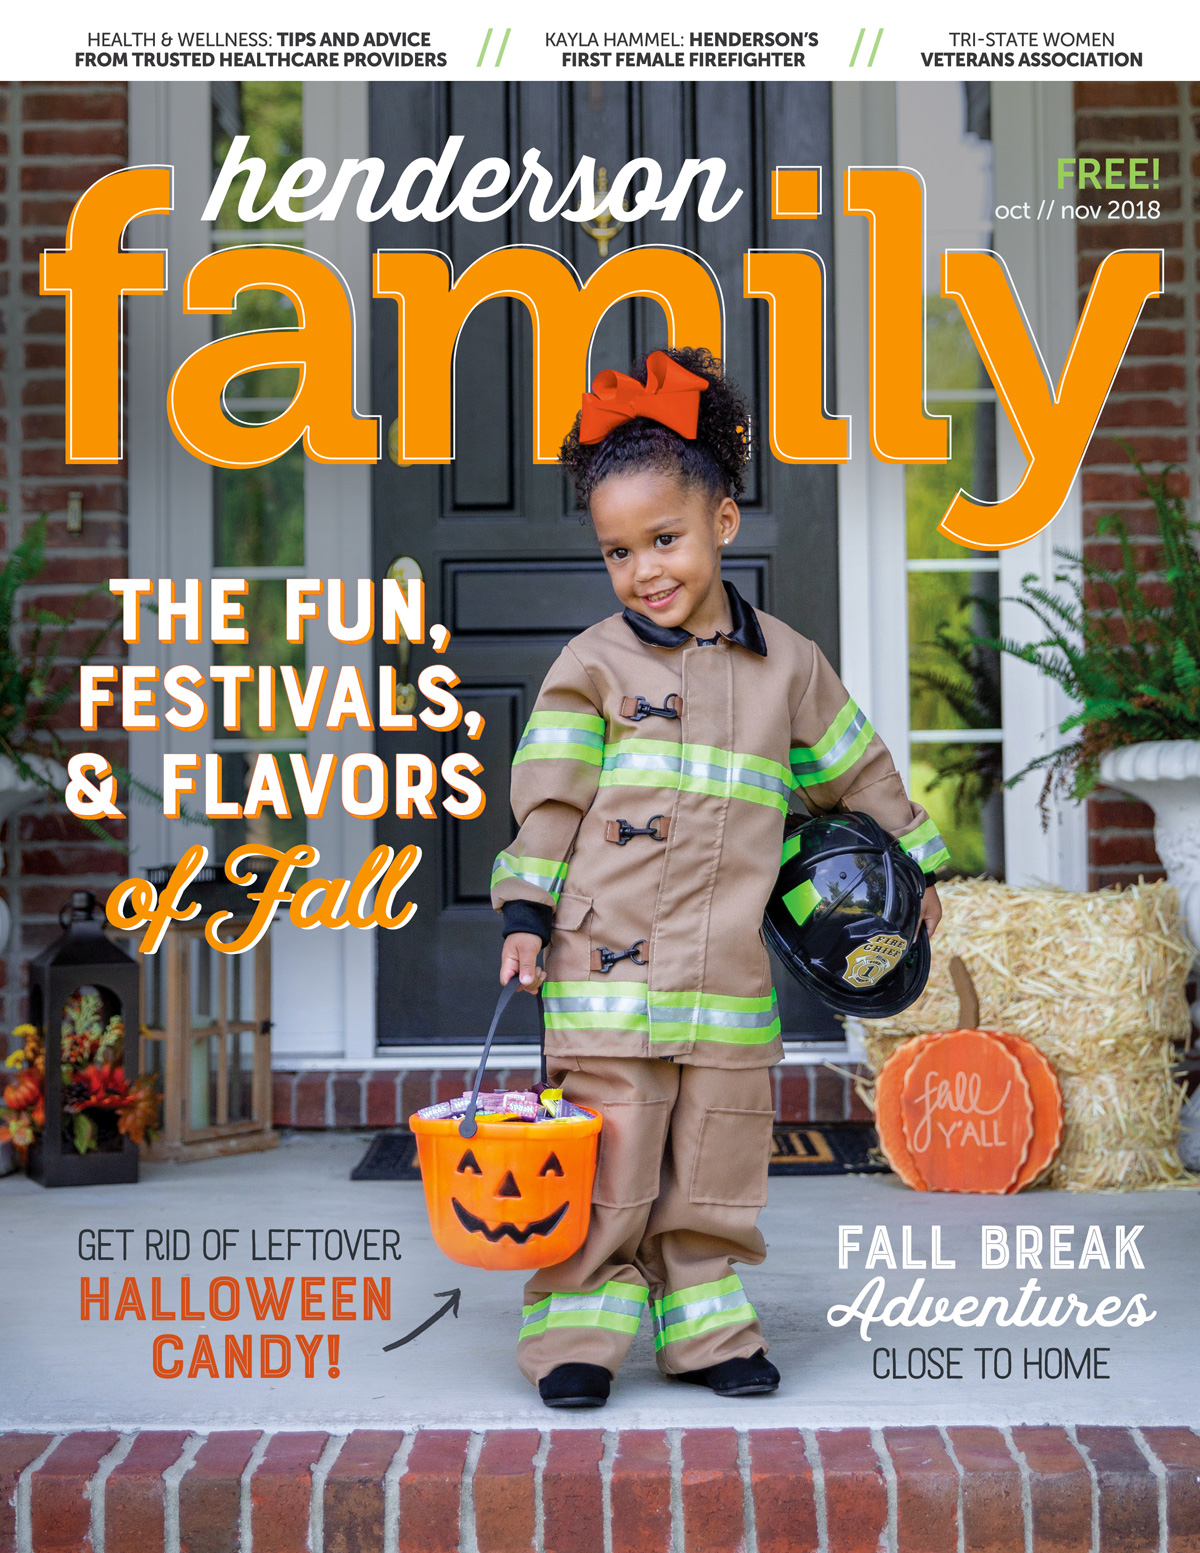 Henderson Family Oct/Nov 2018 Cover